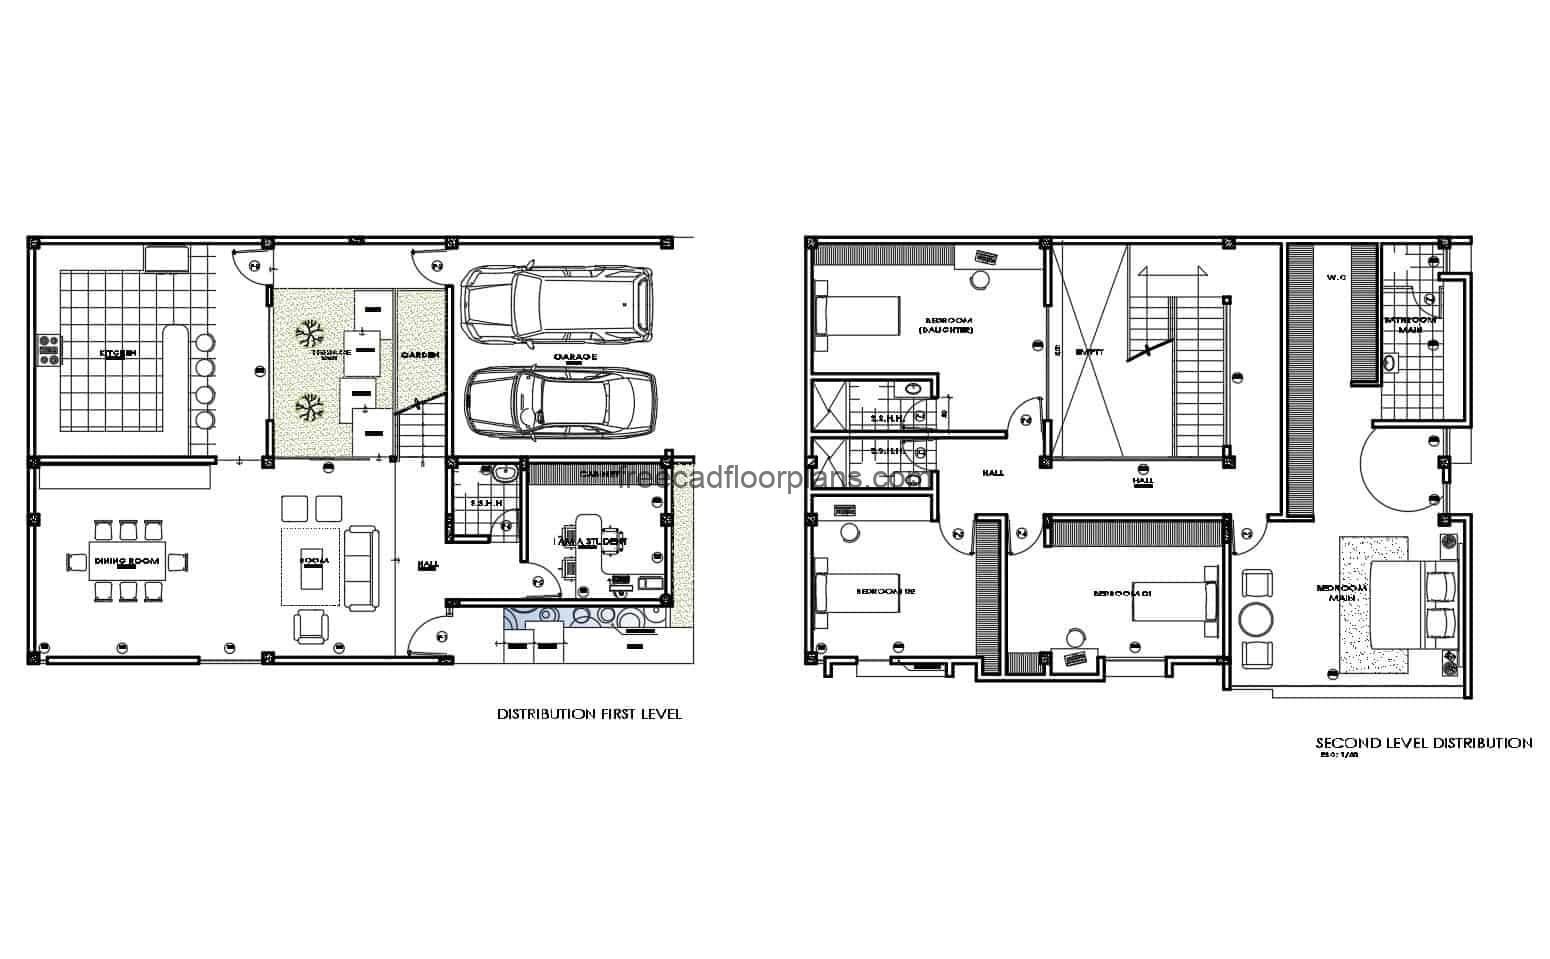 Architectural drawing of a fully furnished floor in Autocad DWG format for free download, two level residence.